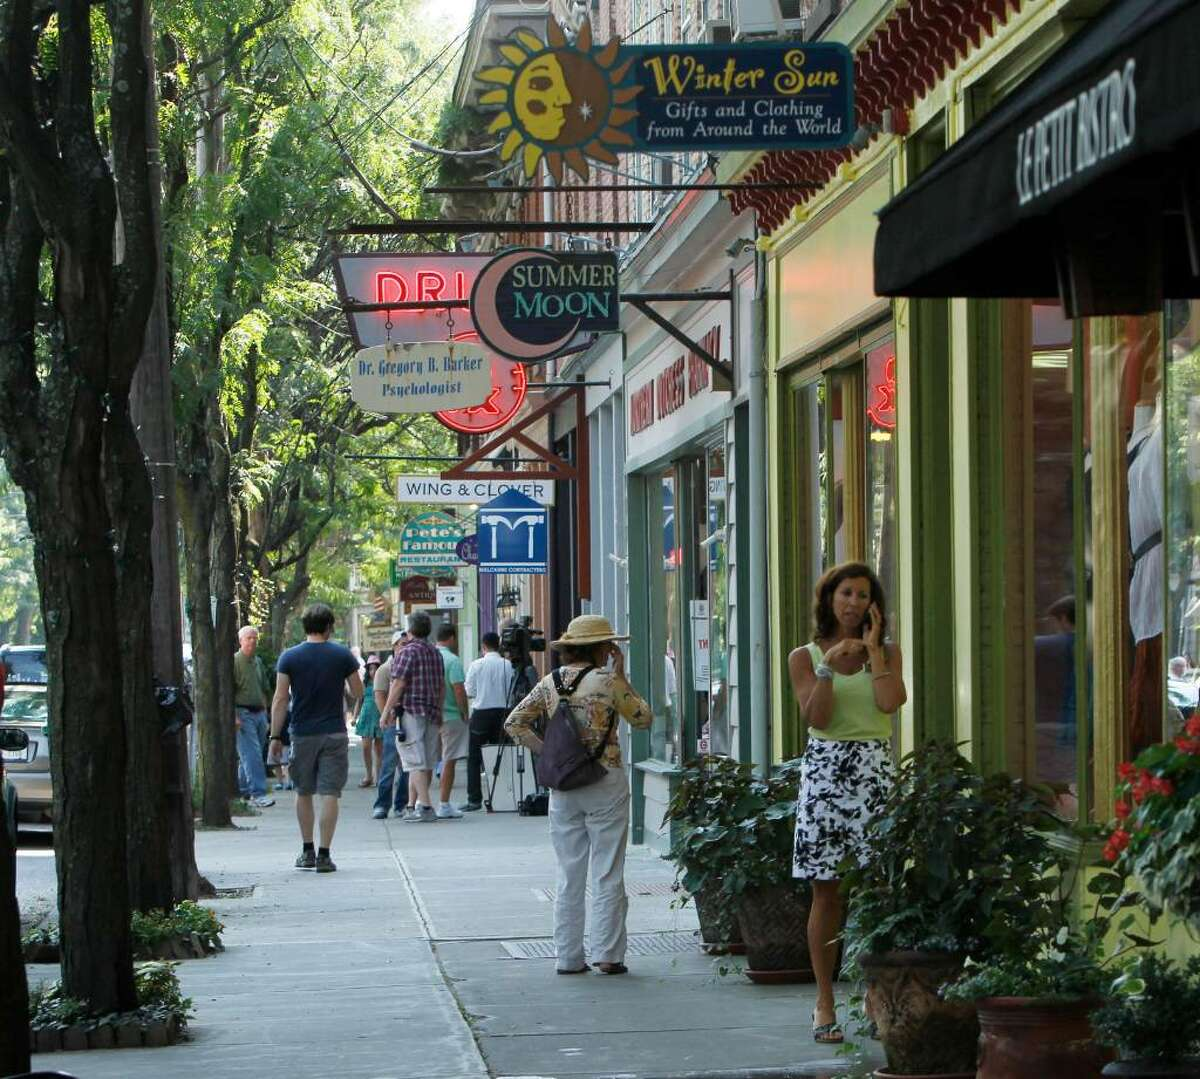 Tourists and locals walk along East Market Street in Rhinebeck. Chelsea Clinton is expected to marry Marc Mezvinsky in the village on Saturday. (Mike Groll / Associated Press)